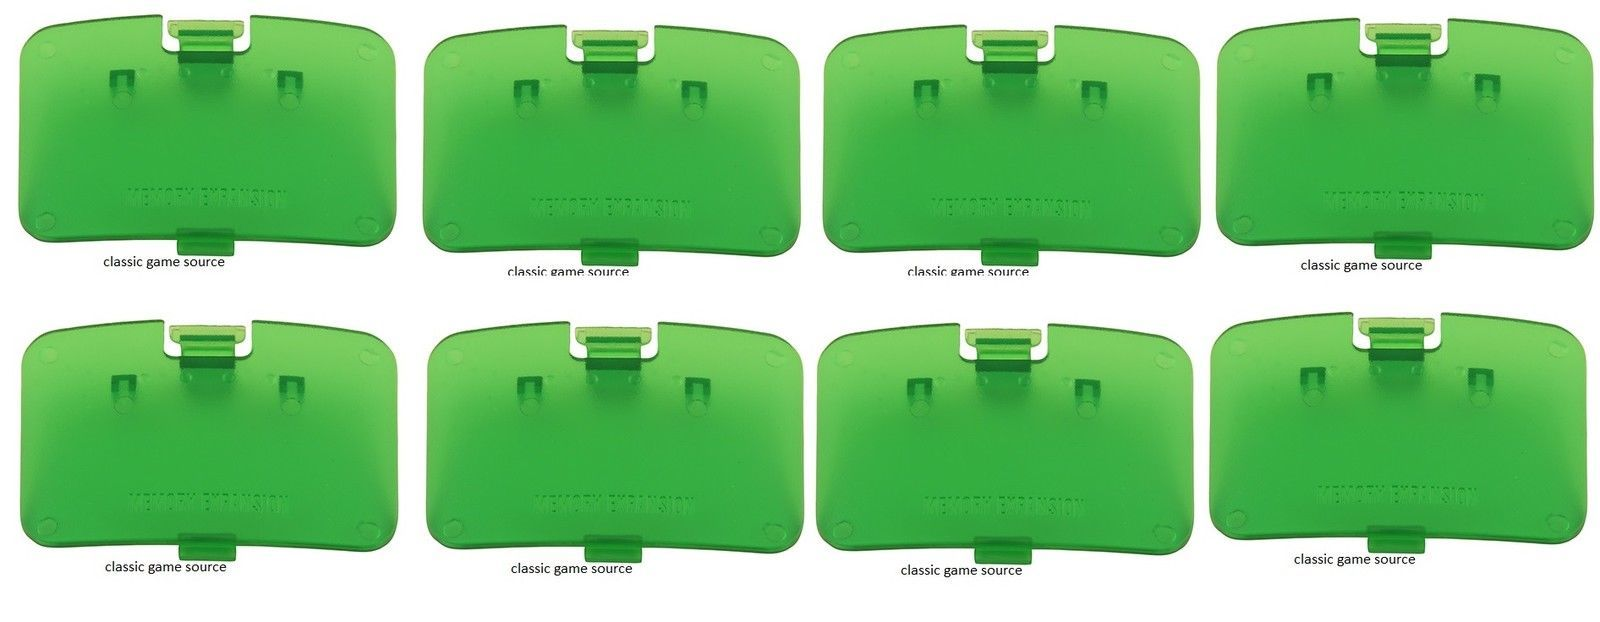 8 LOT NEW Jungle Green Memory Expansion Jumper Pak Cover Lid Nintendo 64 N64